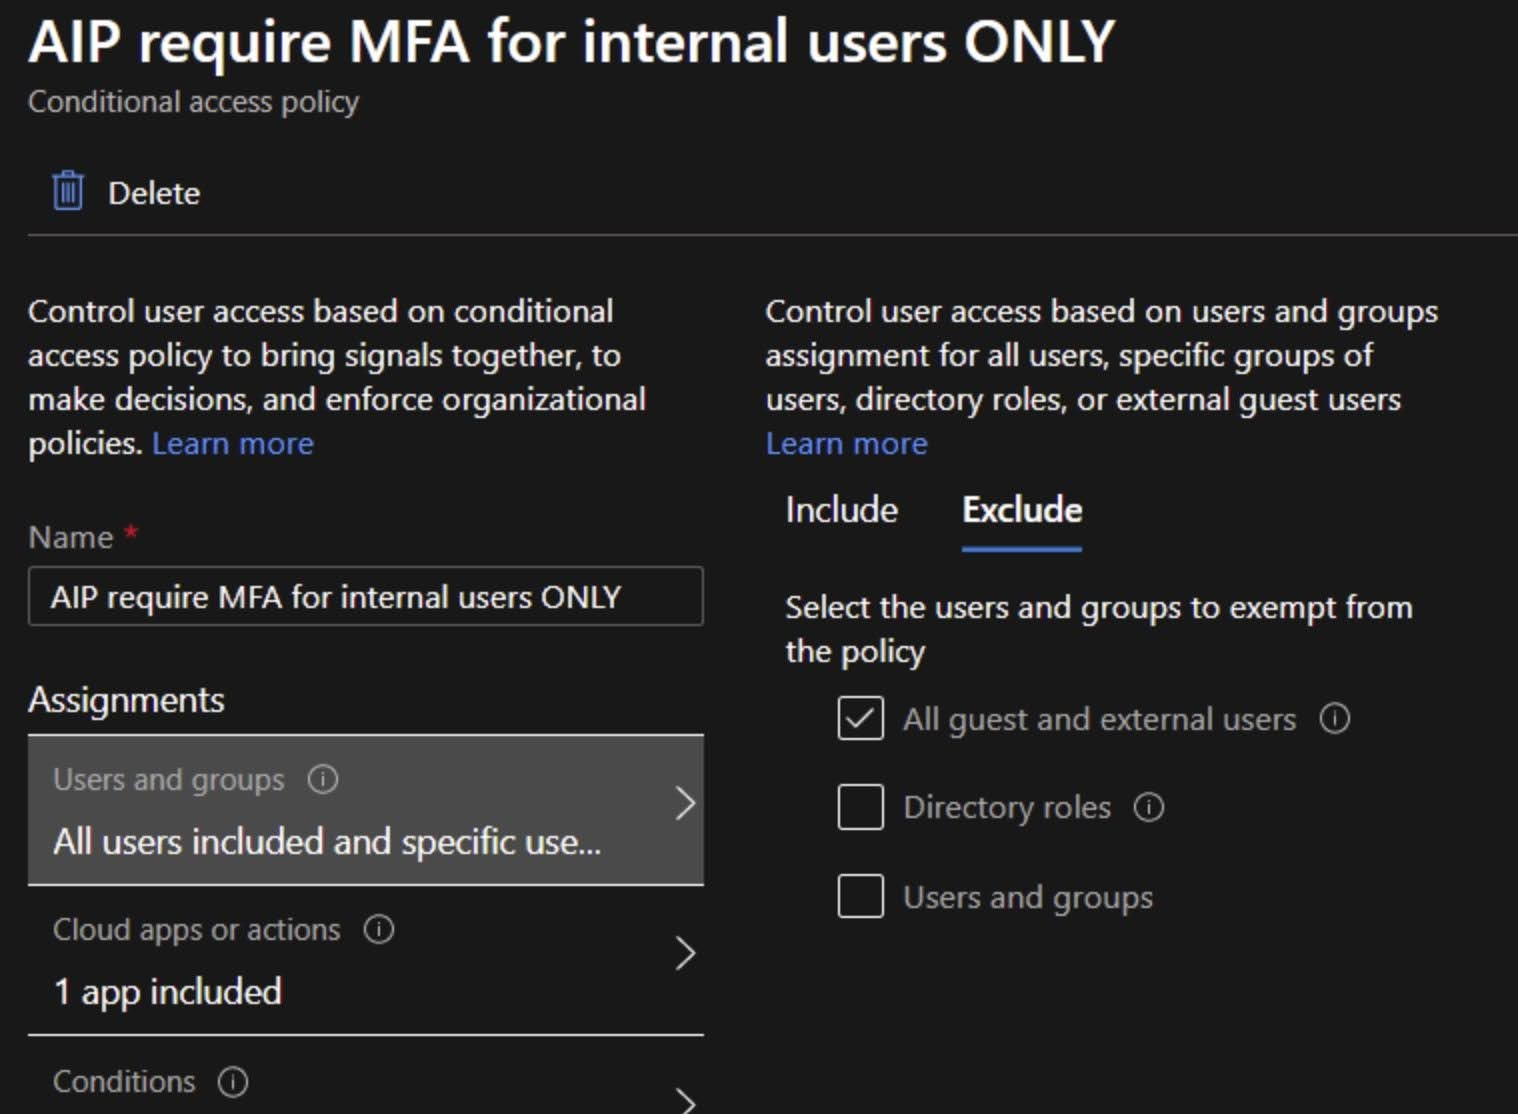 Under the Assignments > Users and groups > Exclude for All guest and external users.